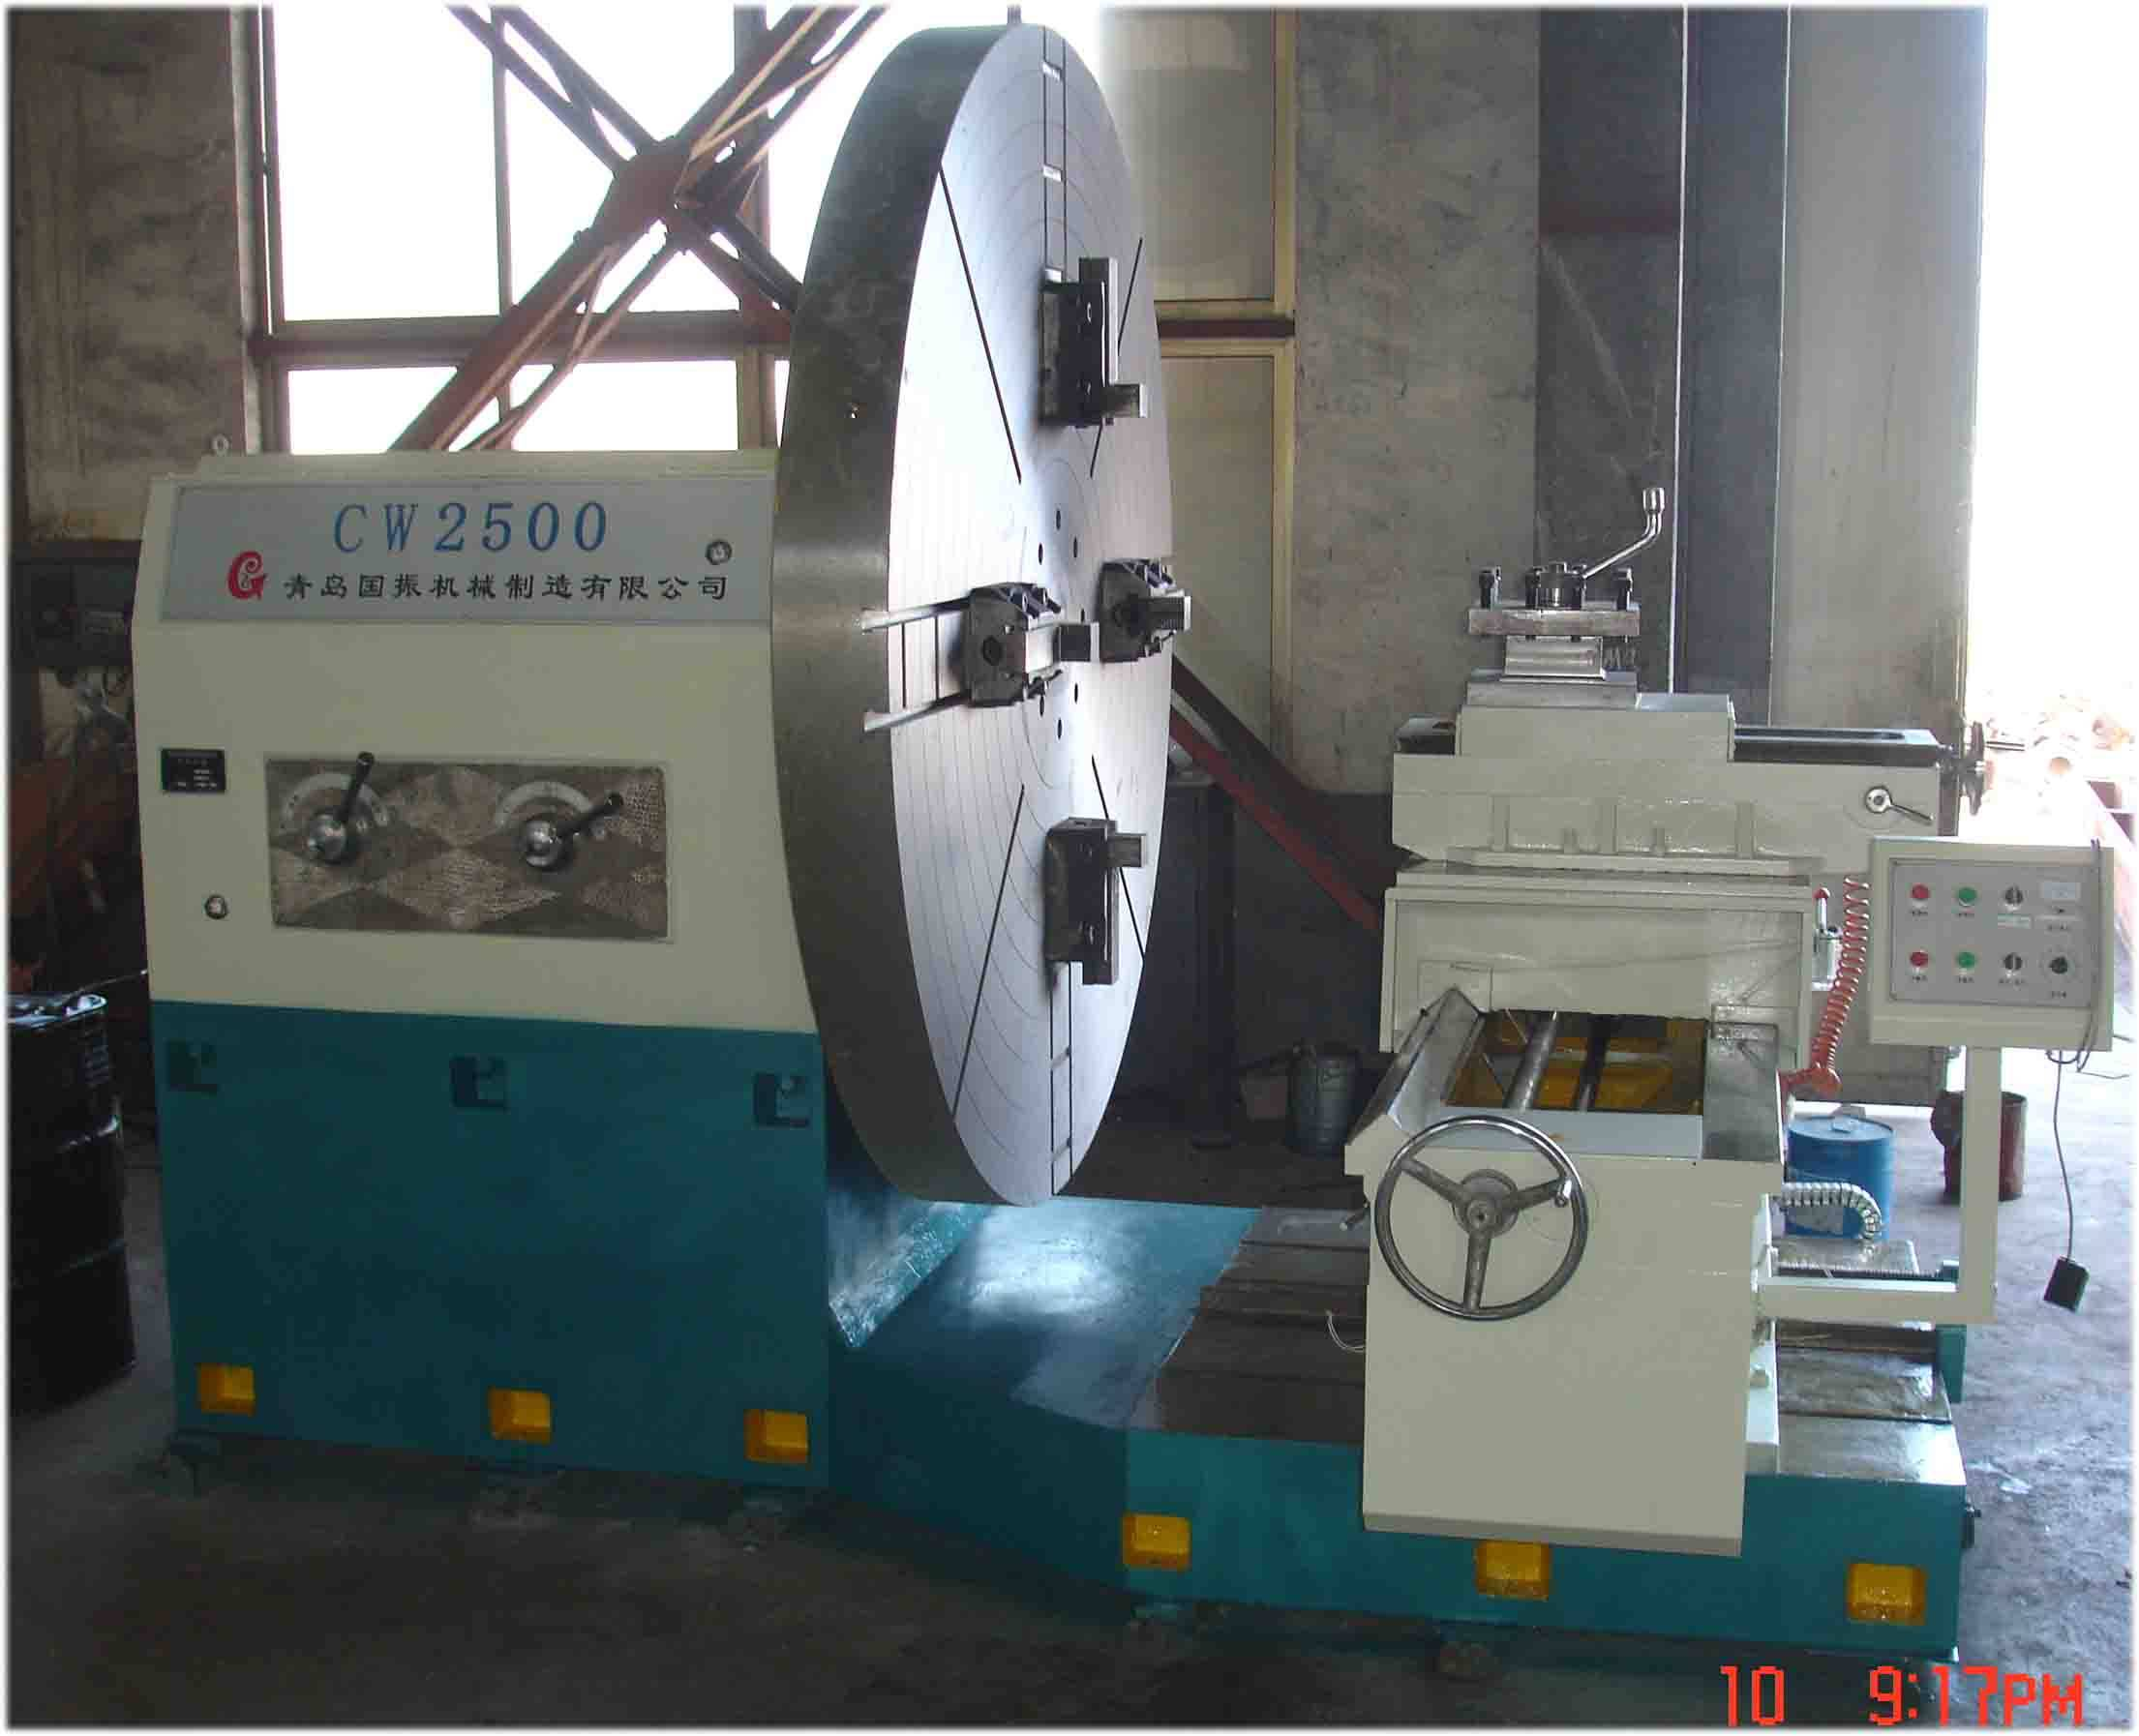 New! China Swing Diameter 2500 mm Flange Plate Ring Parts Turning Heavy Duty End Face Lathe Machine